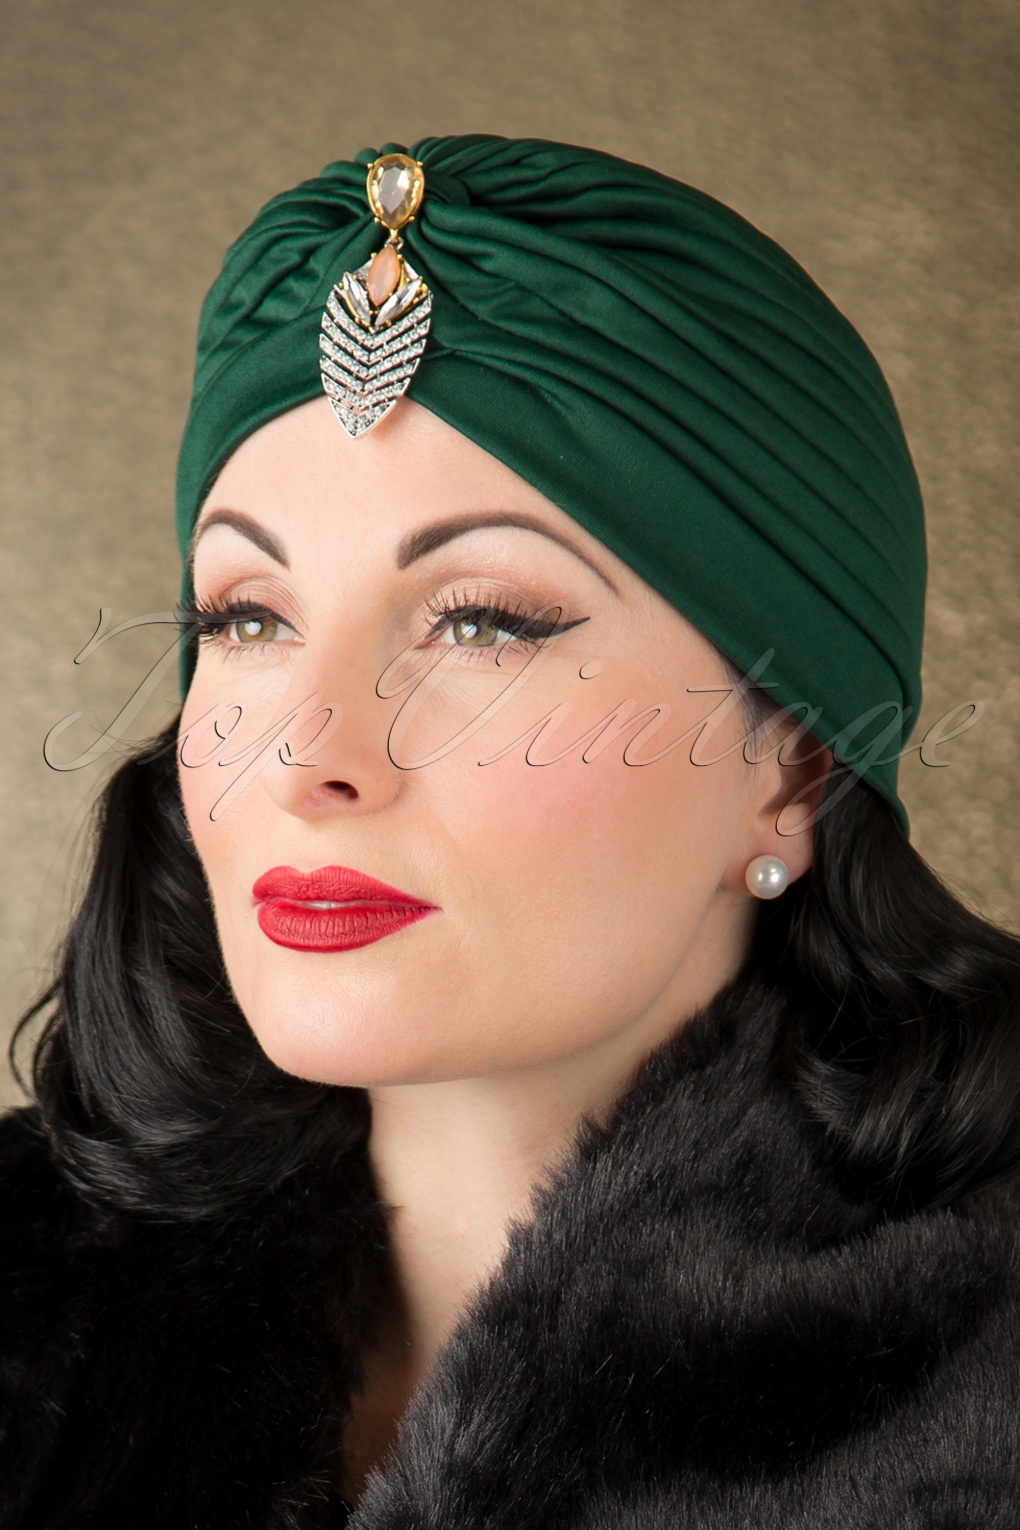 Vintage Hair Accessories: Combs, Headbands, Flowers, Scarf, Wigs 50s Sally Sateen Turban Hat in Green £7.87 AT vintagedancer.com